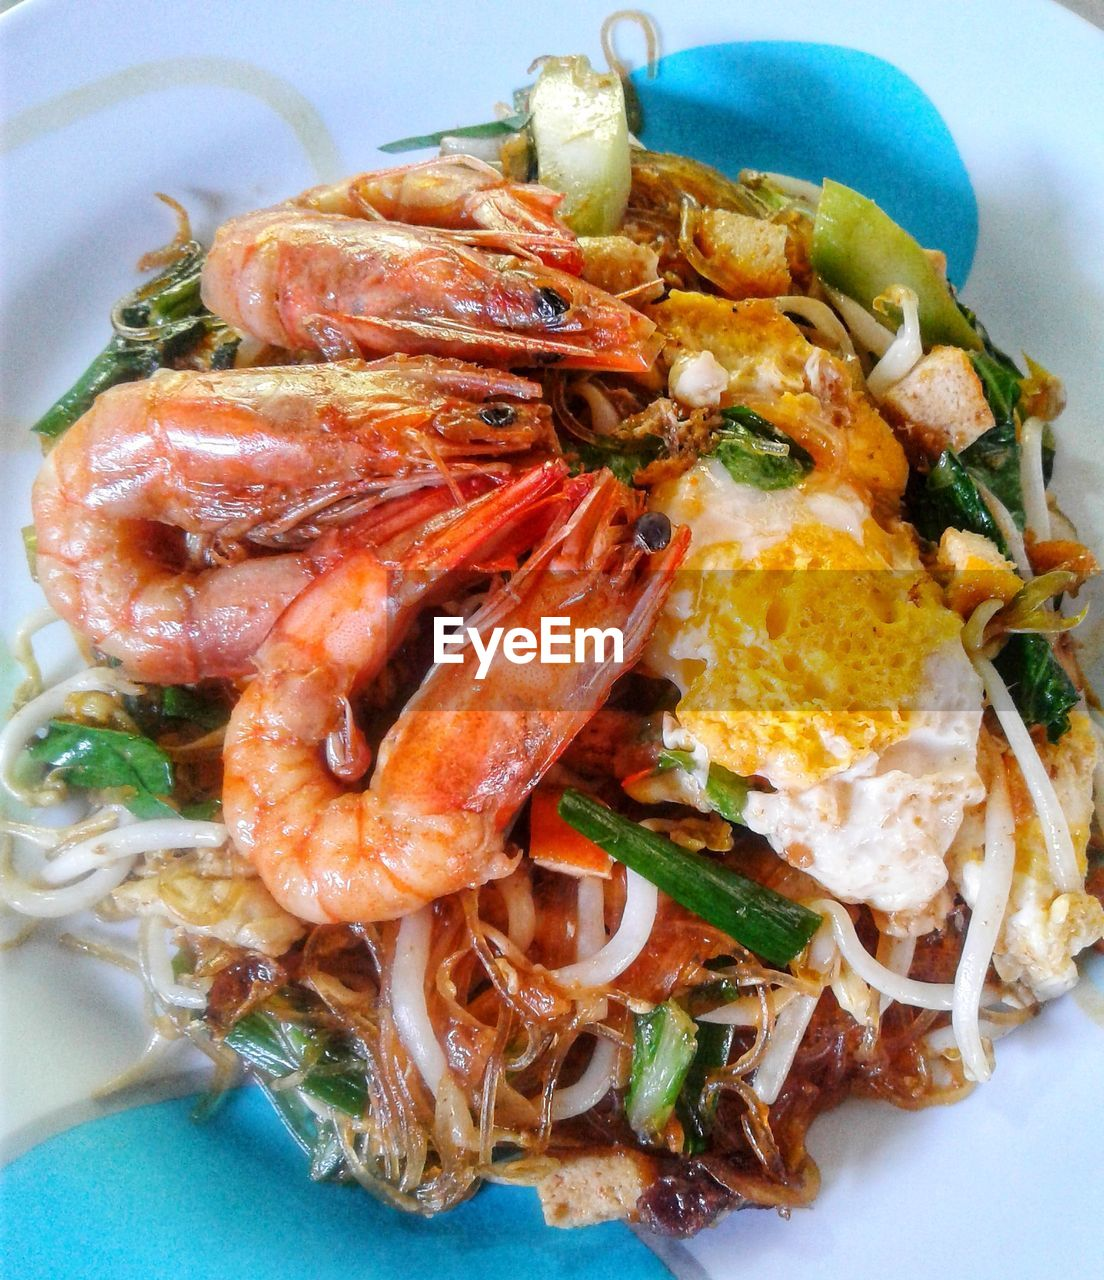 food, food and drink, freshness, ready-to-eat, plate, healthy eating, indoors, close-up, wellbeing, serving size, seafood, meat, no people, still life, vegetable, high angle view, meal, crustacean, shrimp - seafood, indulgence, dinner, crockery